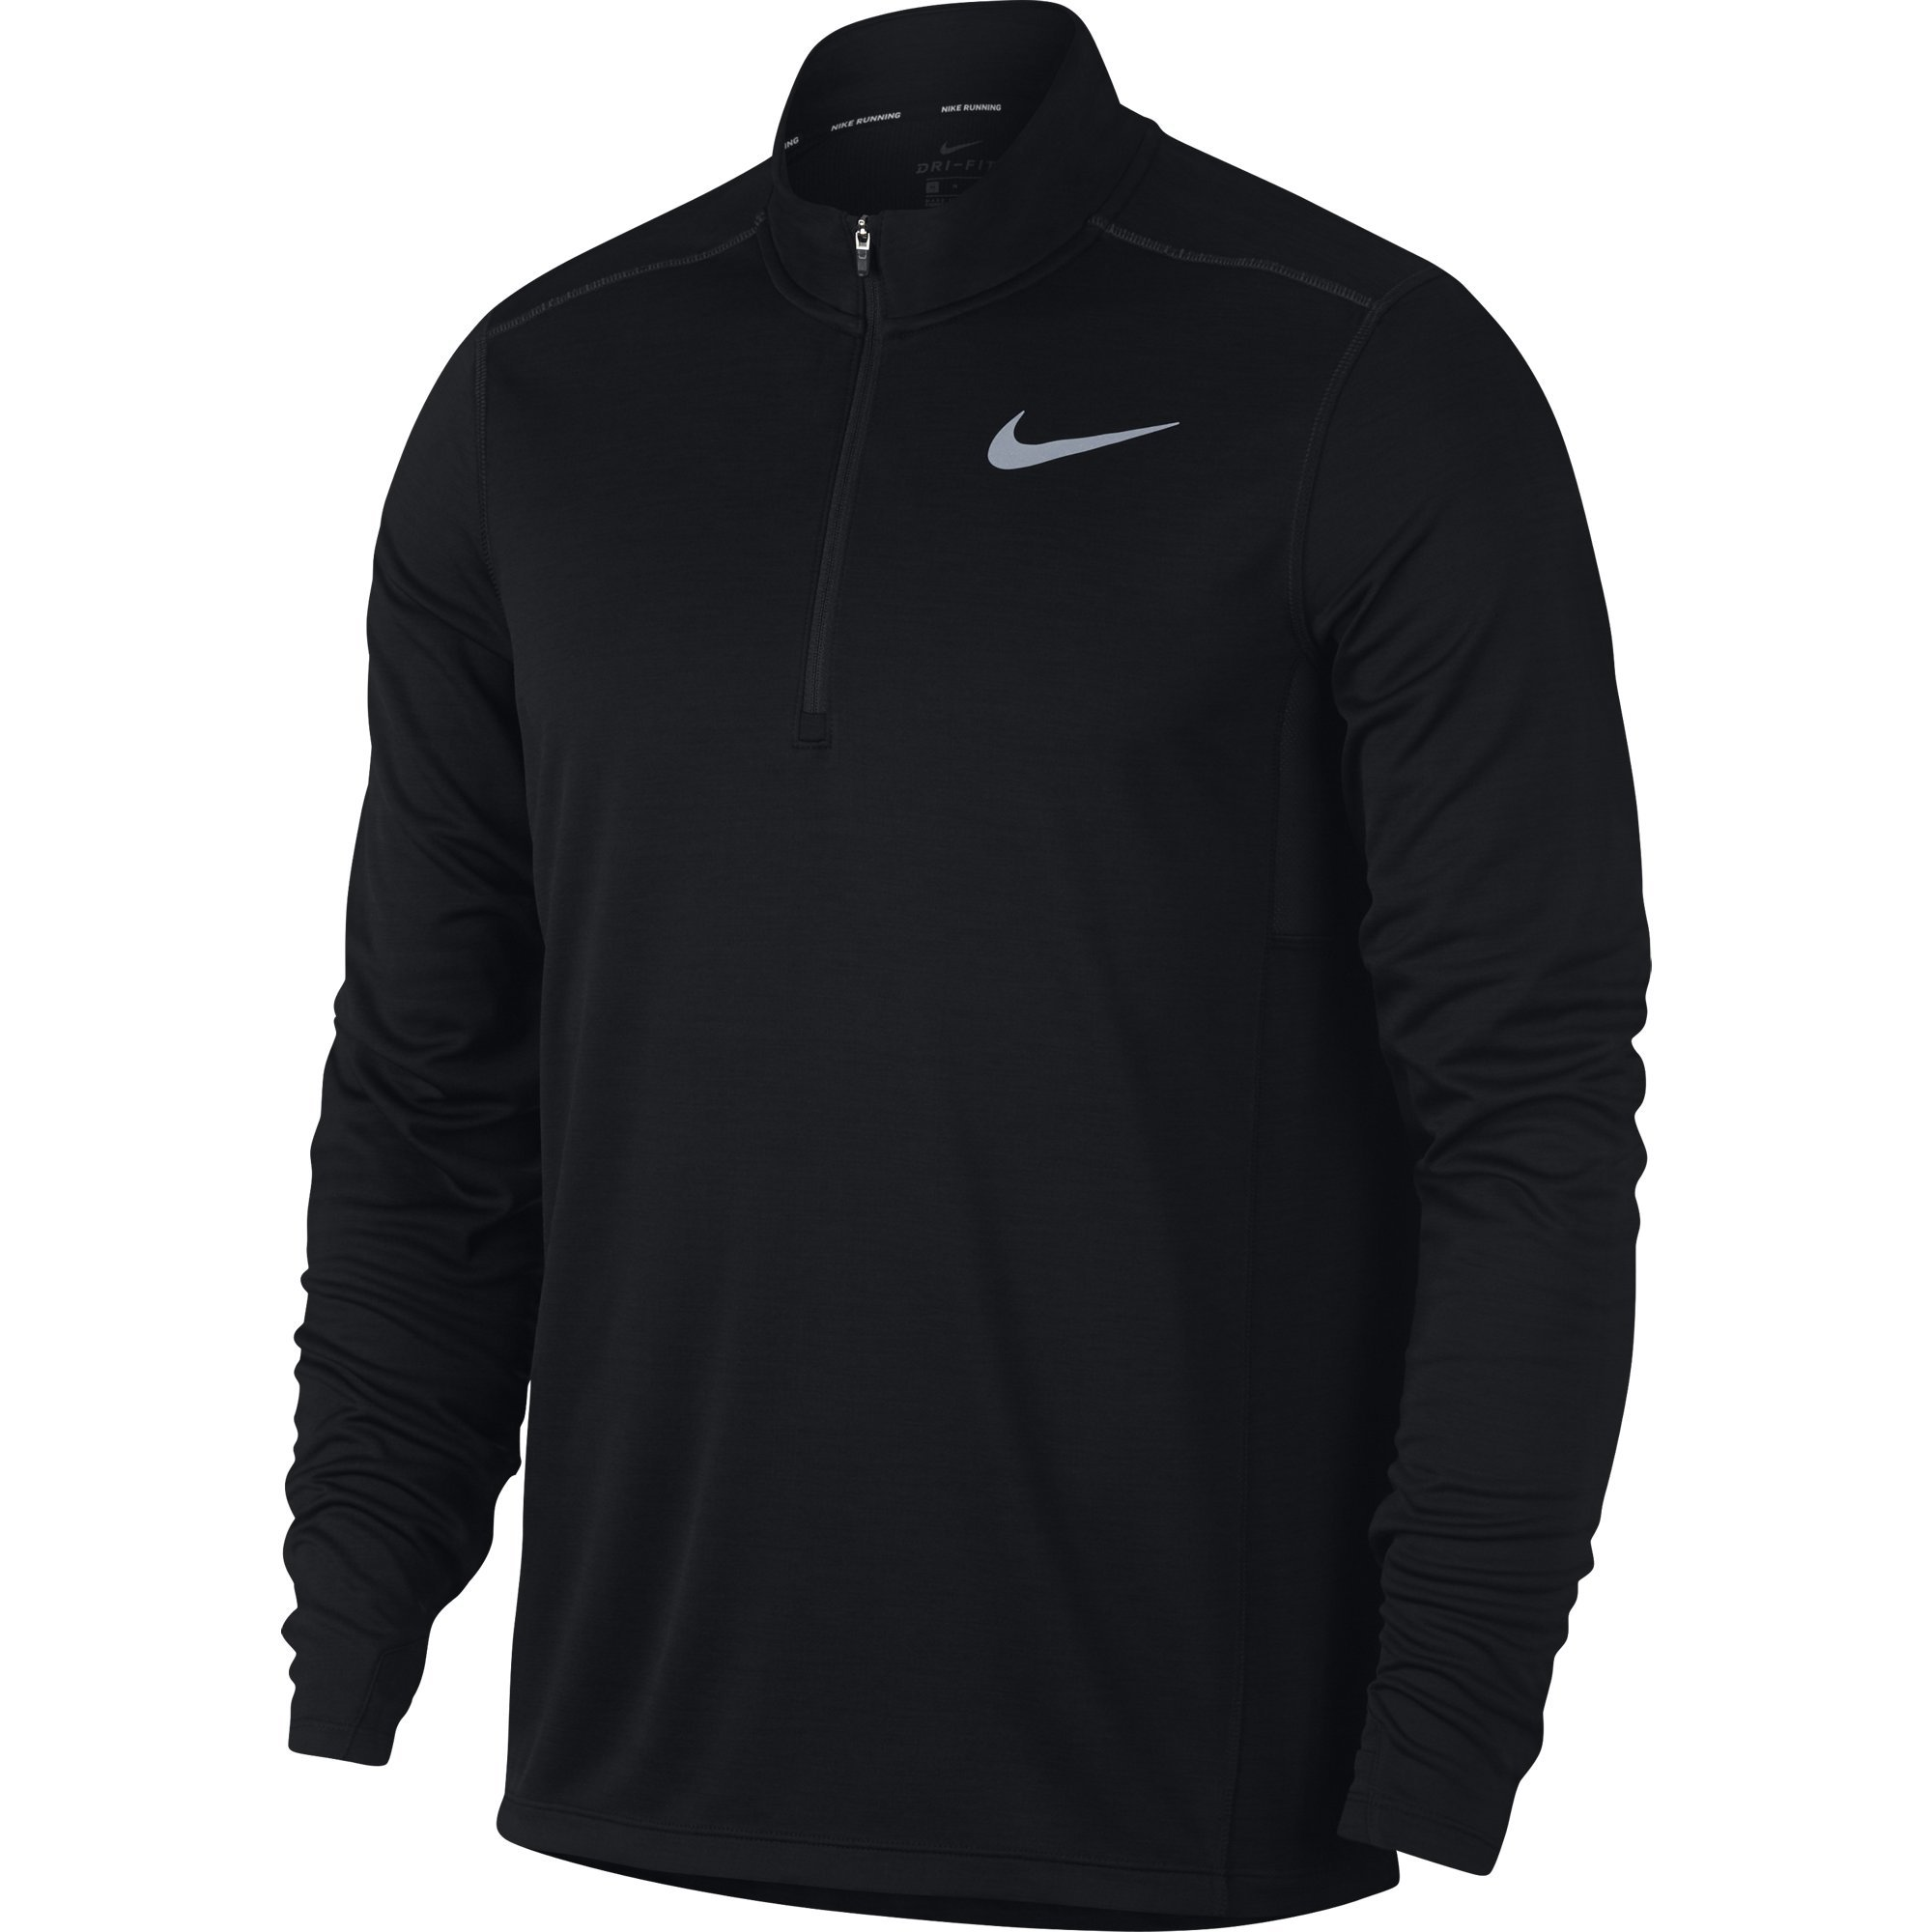 NIKE Men's Pacer Half-Zip Top, Black, Medium by Nike